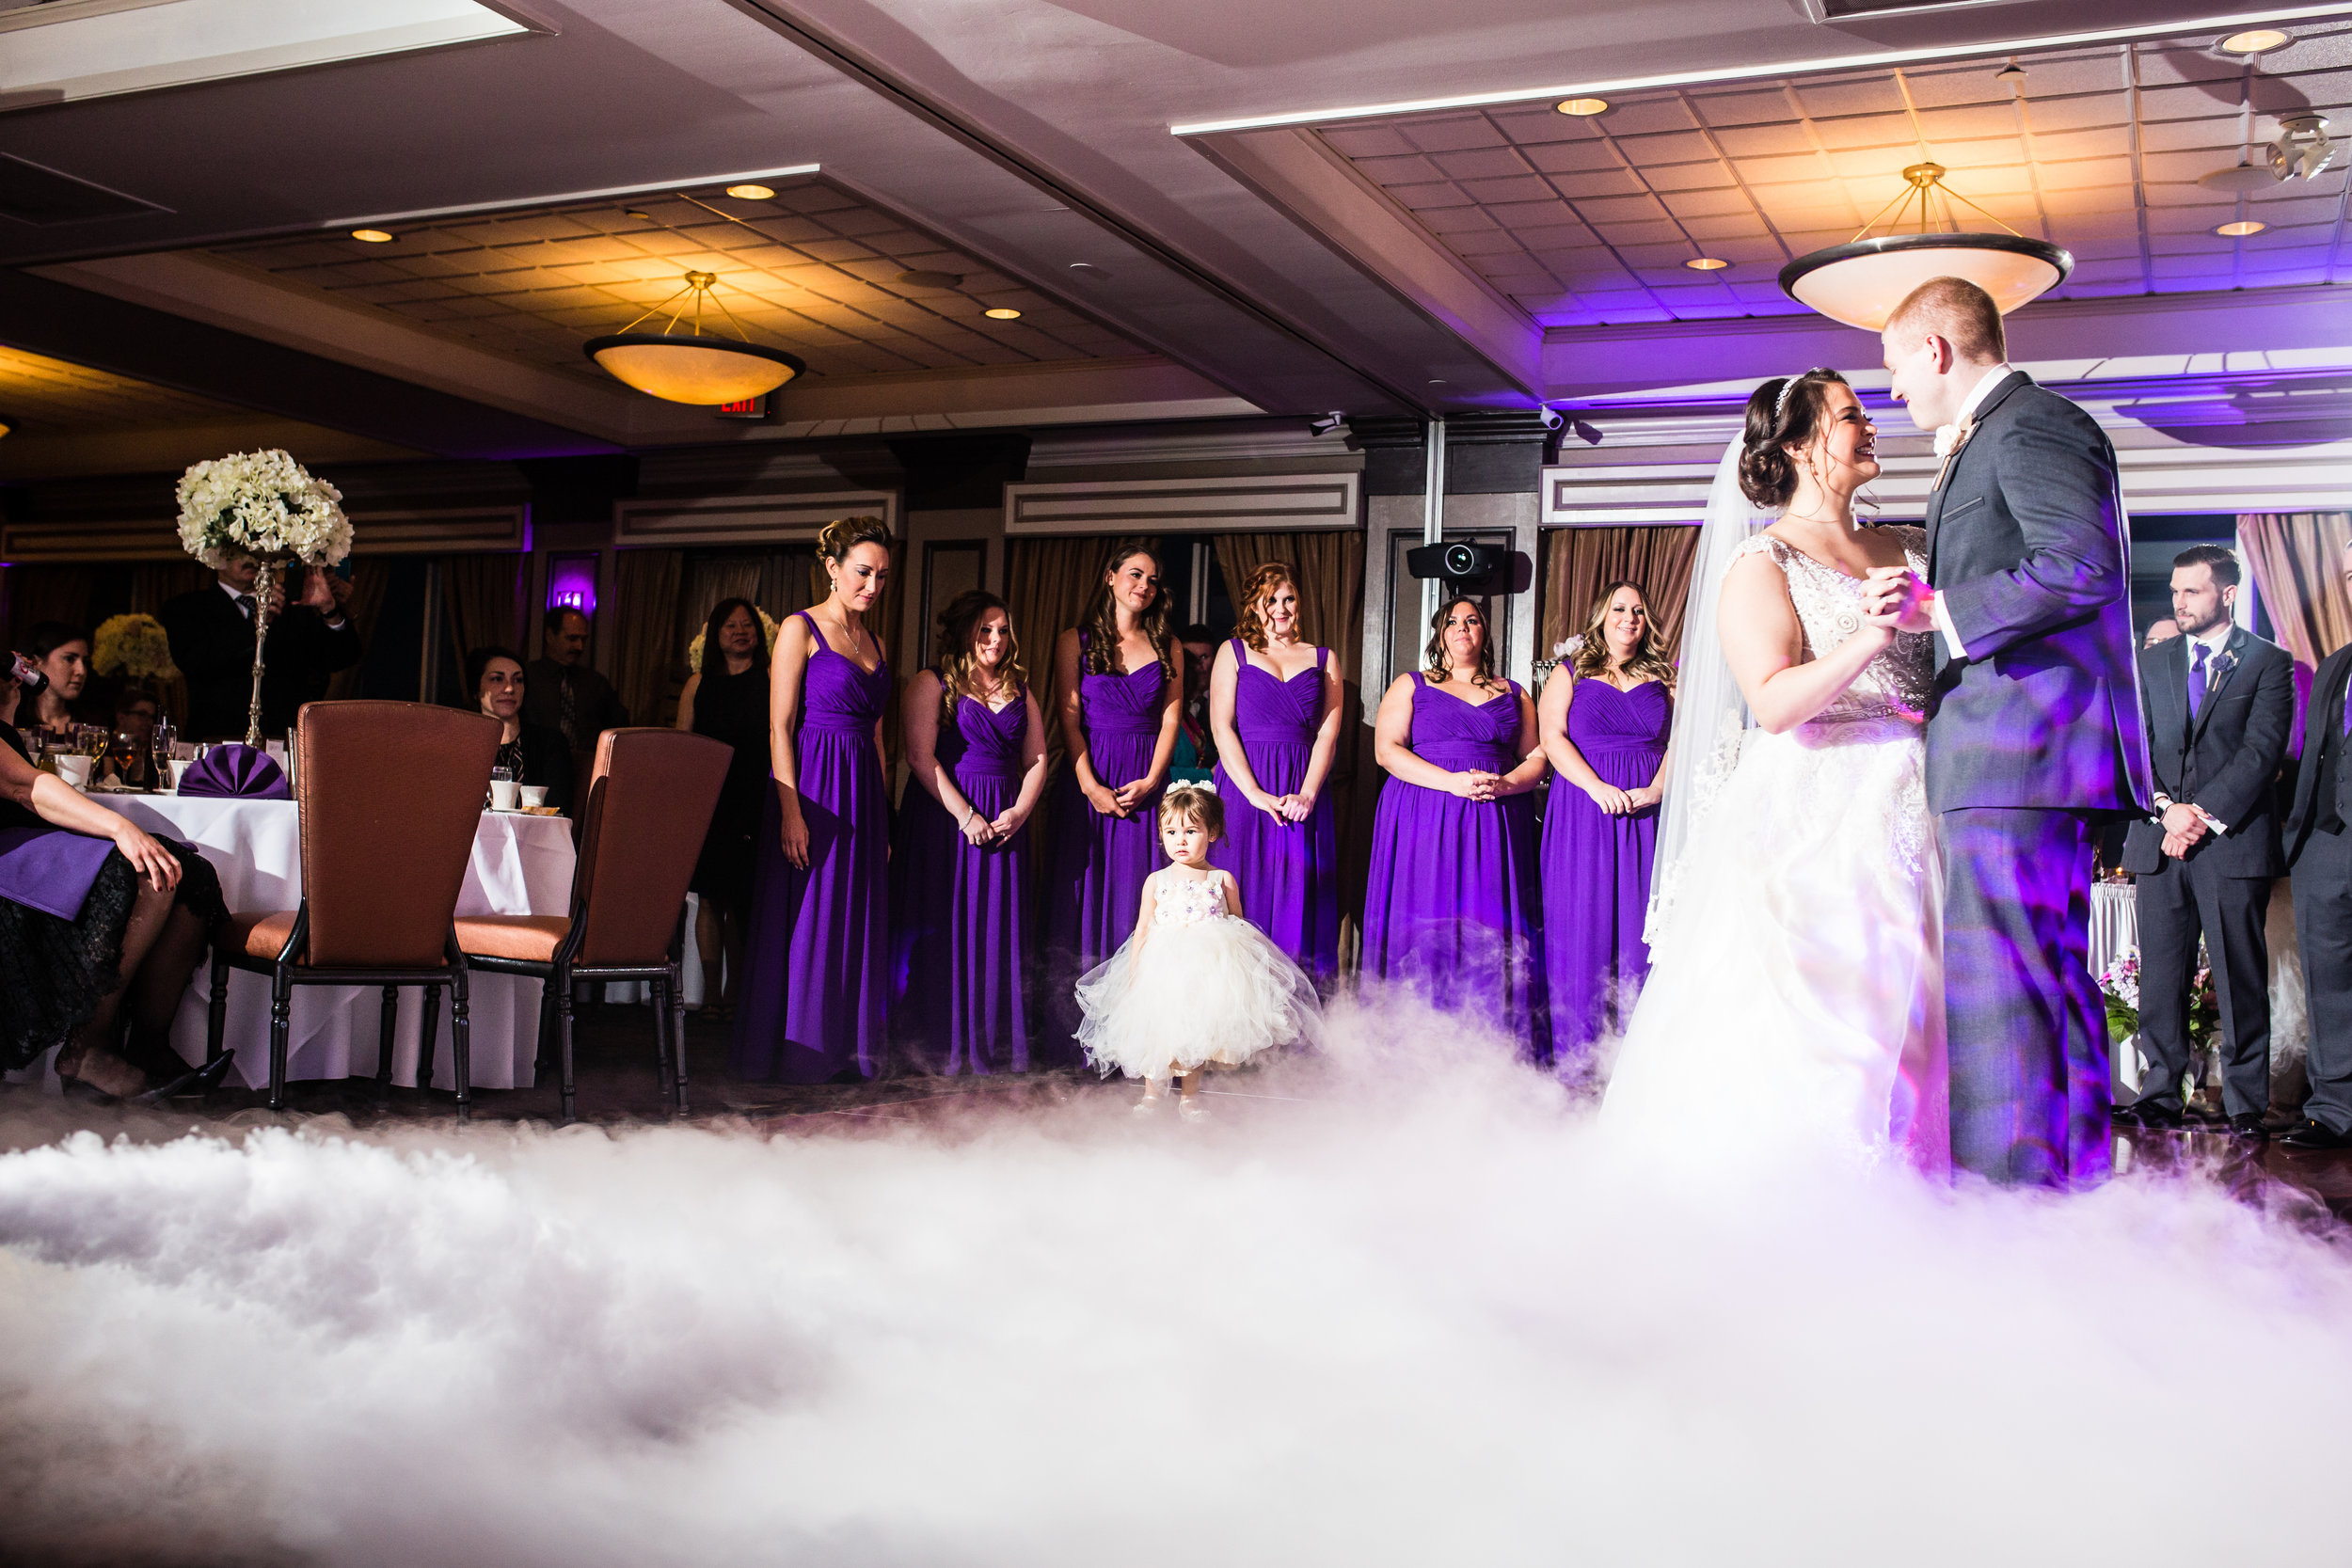 scotlandrunweddingfallsouthjerseyweddingphotographer-21.jpg